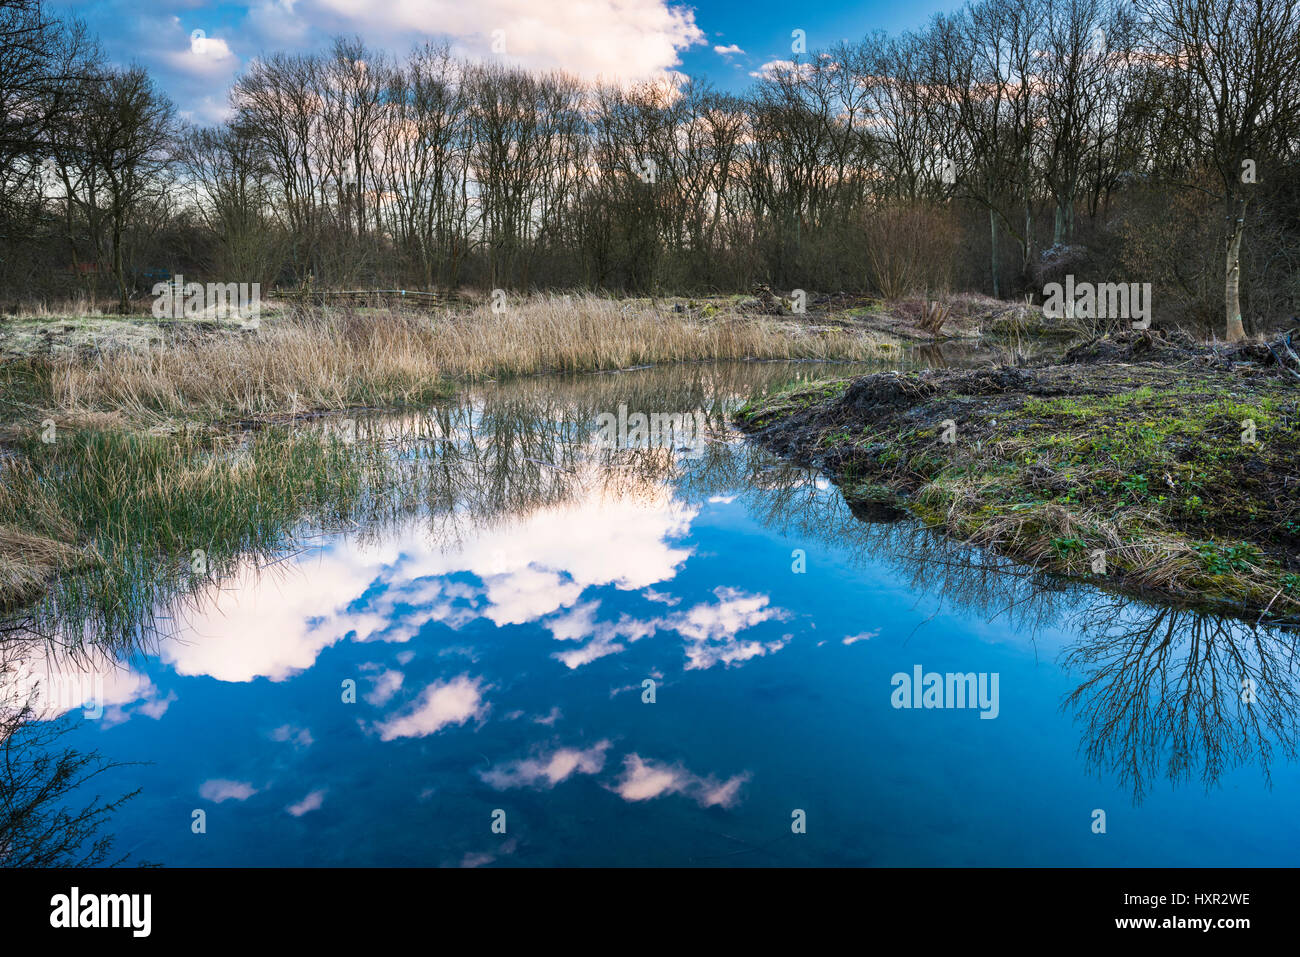 The pond at Castor Hanglands National Nature Reserve (NNR) and Site of Special Scientific Interest (SSSI), Cambridgeshire, - Stock Image